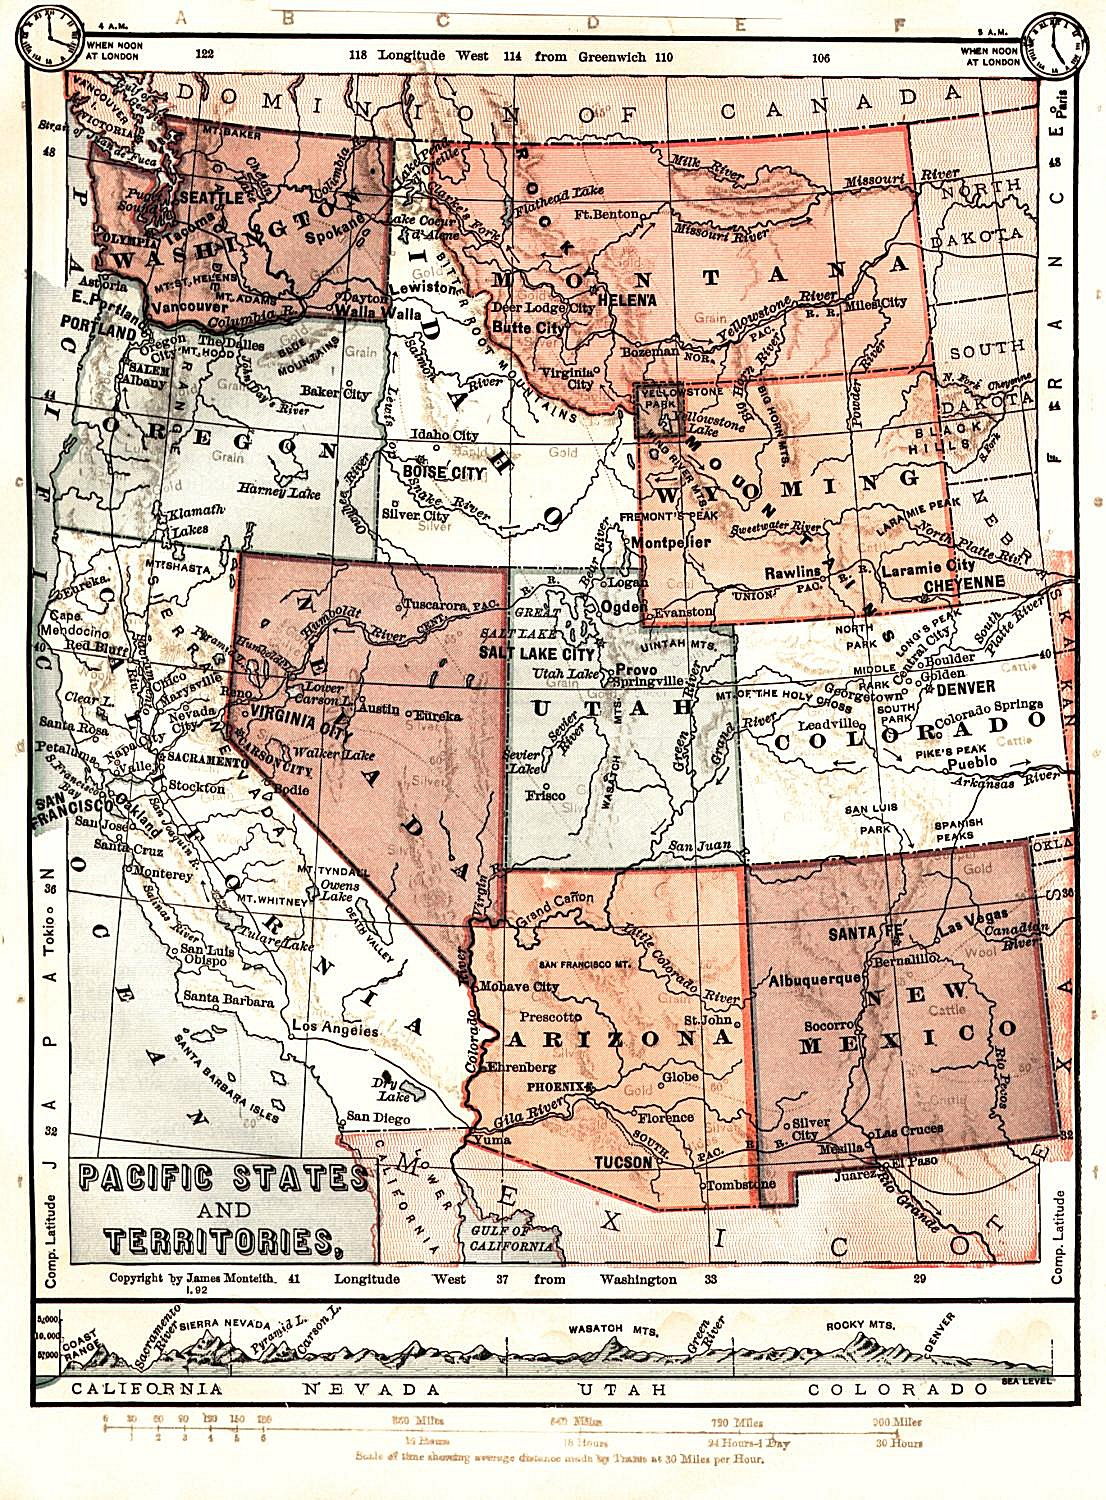 Wyoming Maps Wyoming Digital Map Library Table Of Contents - Map of nevada and arizona usa